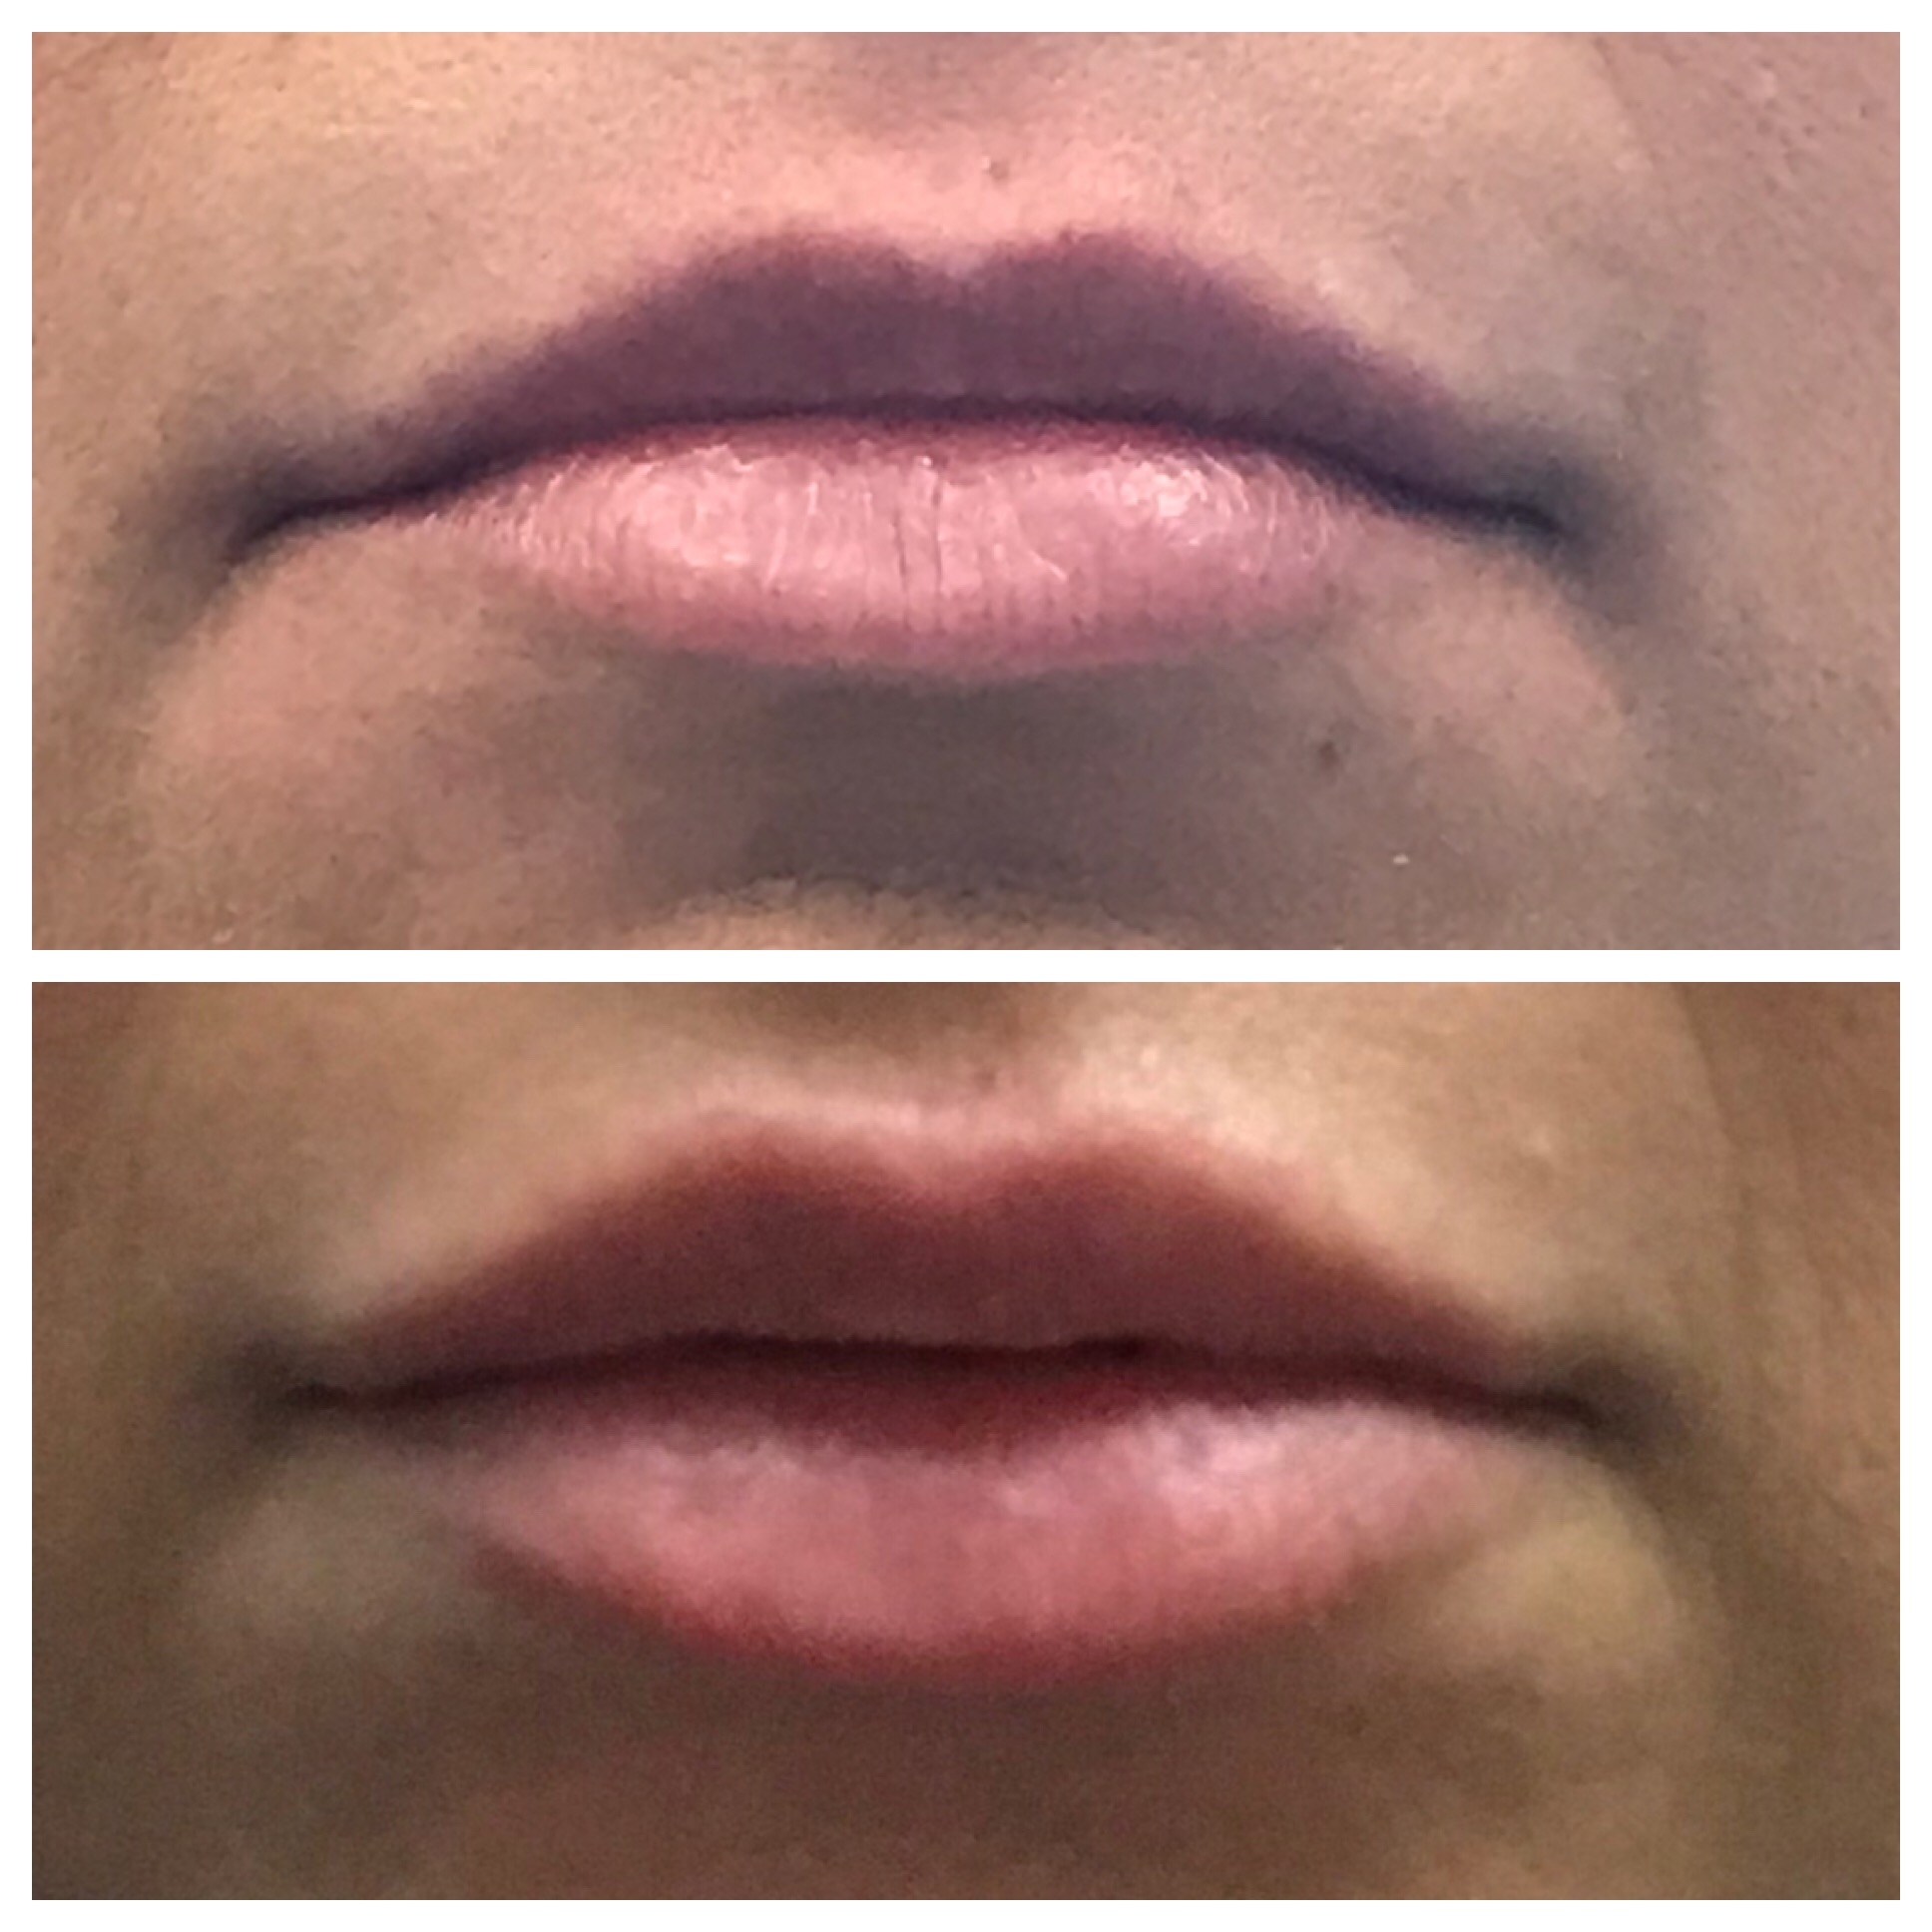 Juvederm before and after results on lips